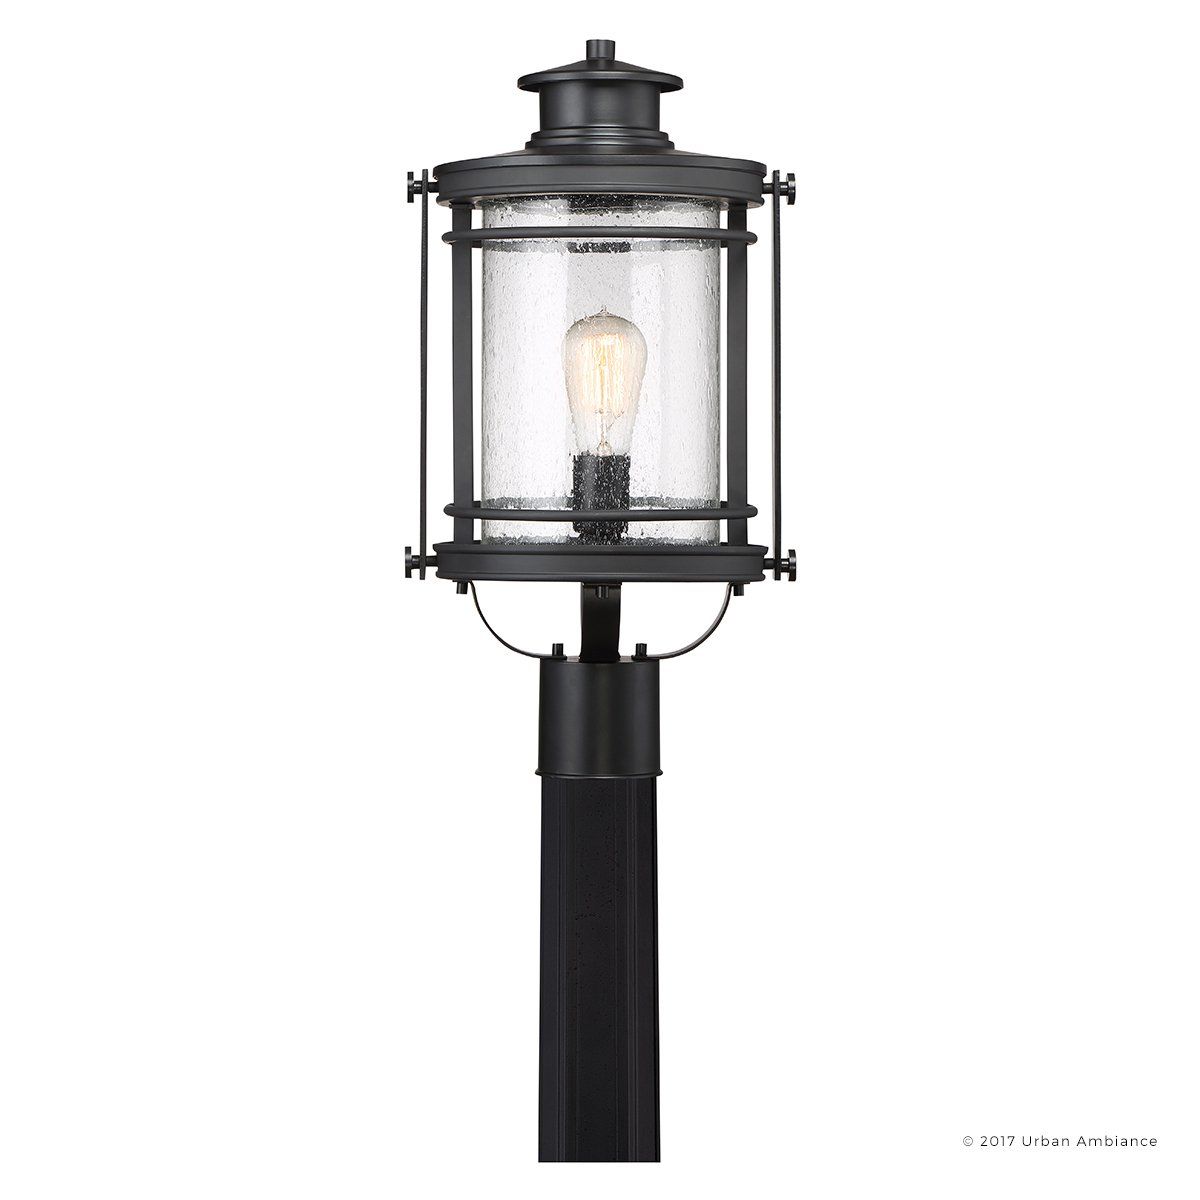 Luxury MidCentury Modern Outdoor Post Light, Medium Size: 19.5''H x 10.5''W, with Craftsman Style Elements, High-End Black Silk Finish and Seeded Glass, Includes Edison Bulb, UQL1010 by Urban Ambiance